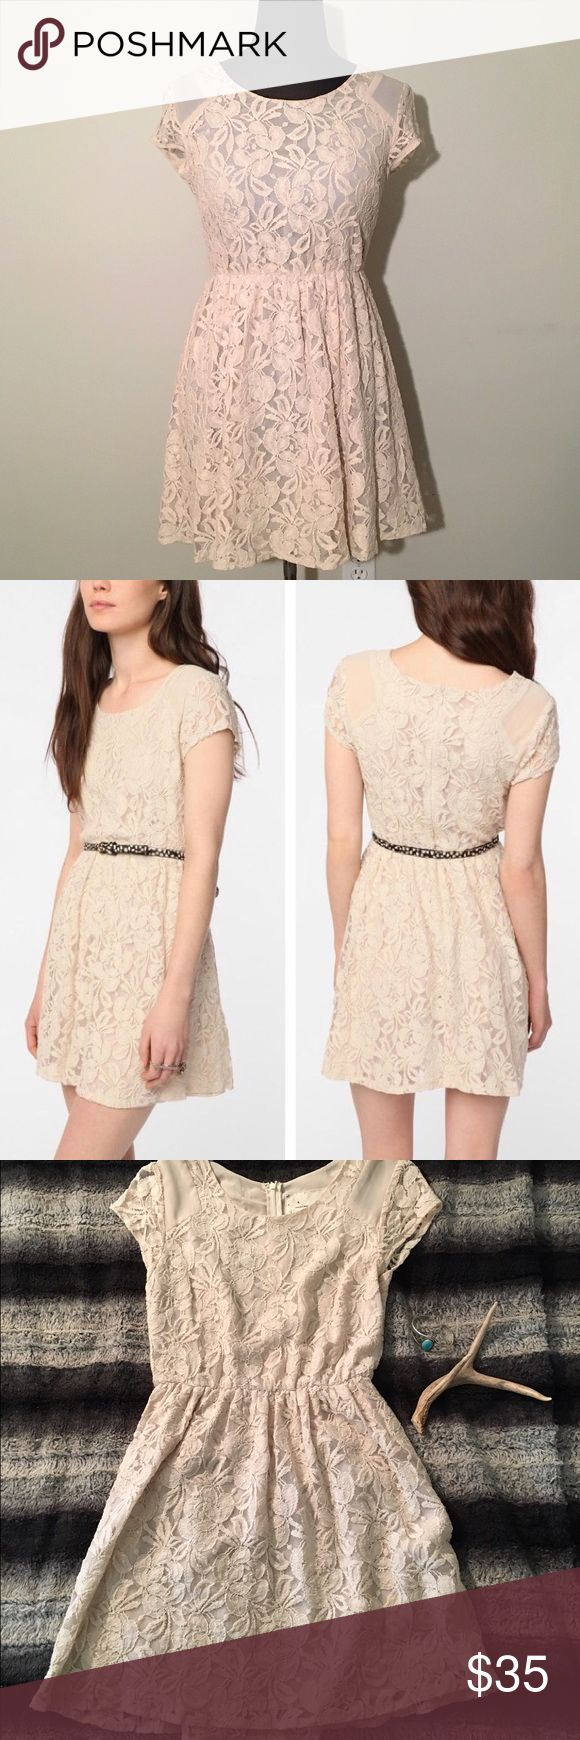 Beige/Cream Short Lace Dress Urban Outfitters lace dress • Short & Sweet • Worn one time • No Damages or Flaws • Perfect for any occasion <3 #urbanoutfitters #dress #shortdress #lacedress #fitandflaredress #springdress #weddingdress #showerdress #easterdress #creamdress #beigedress Urban Outfitters Dresses Mini